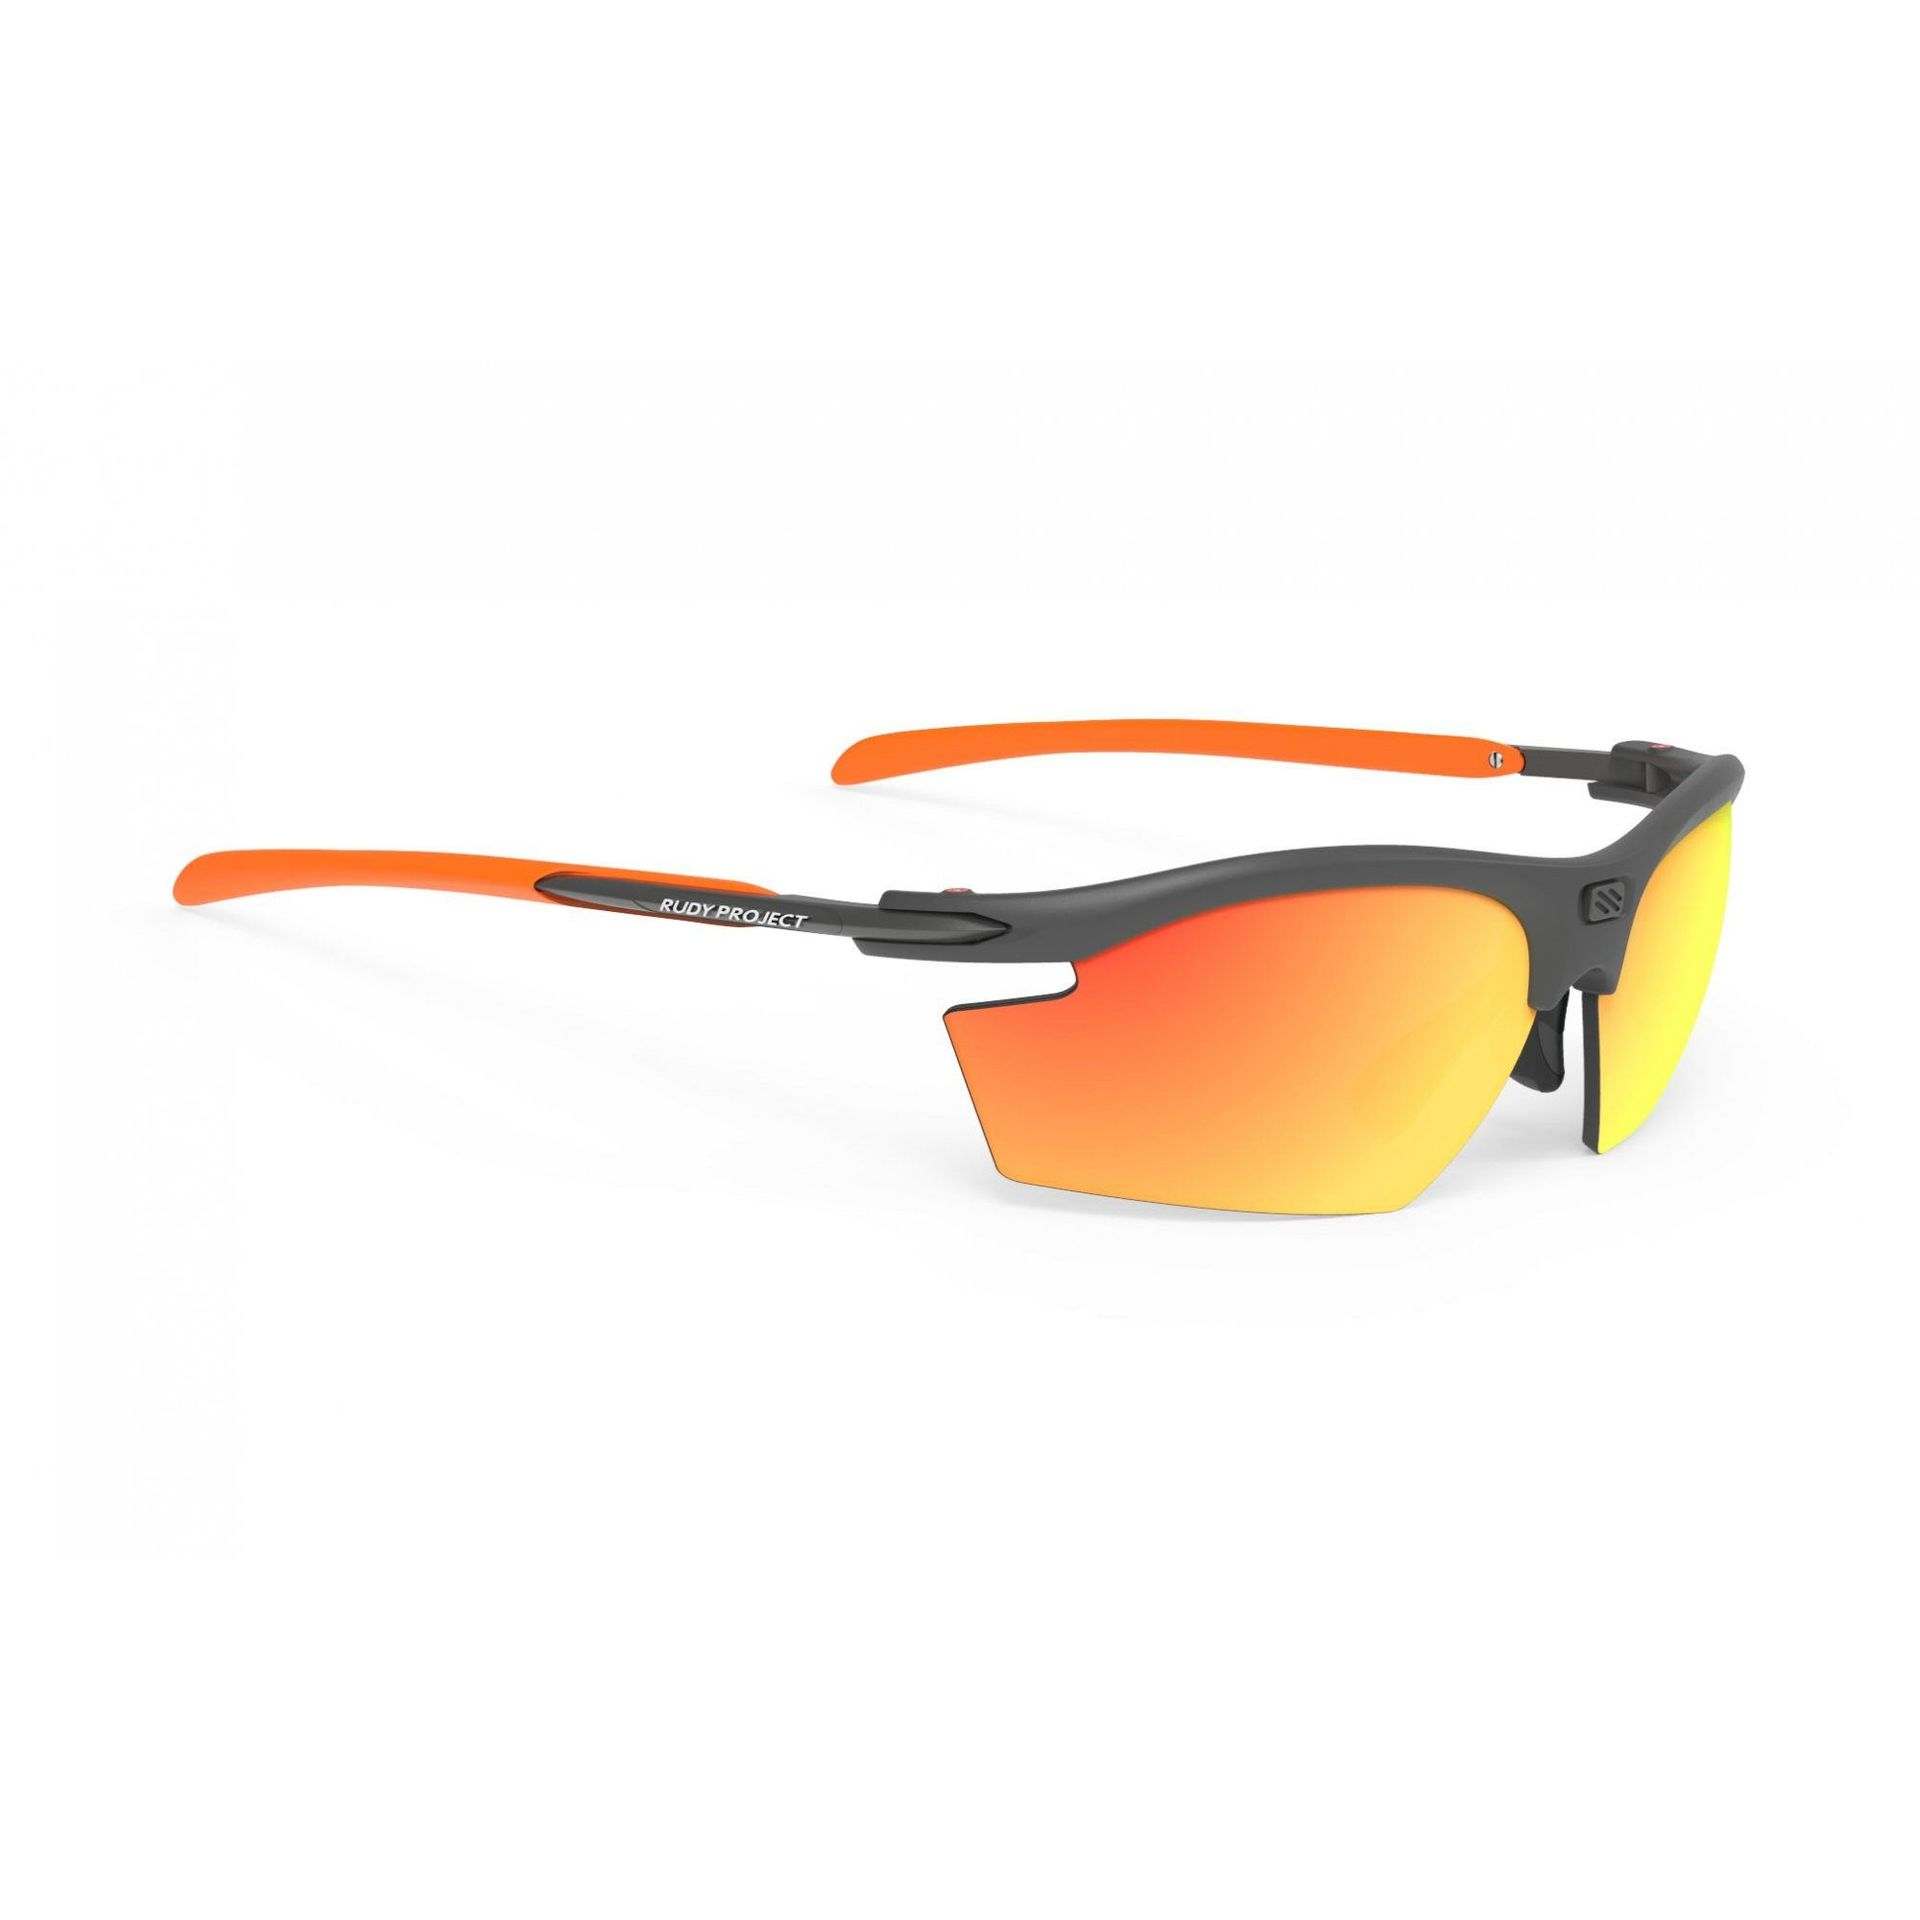 OKULARY RUDY PROJECT RYDON GRAPHITE|ORANGE + ML ORANGE SP534098 1